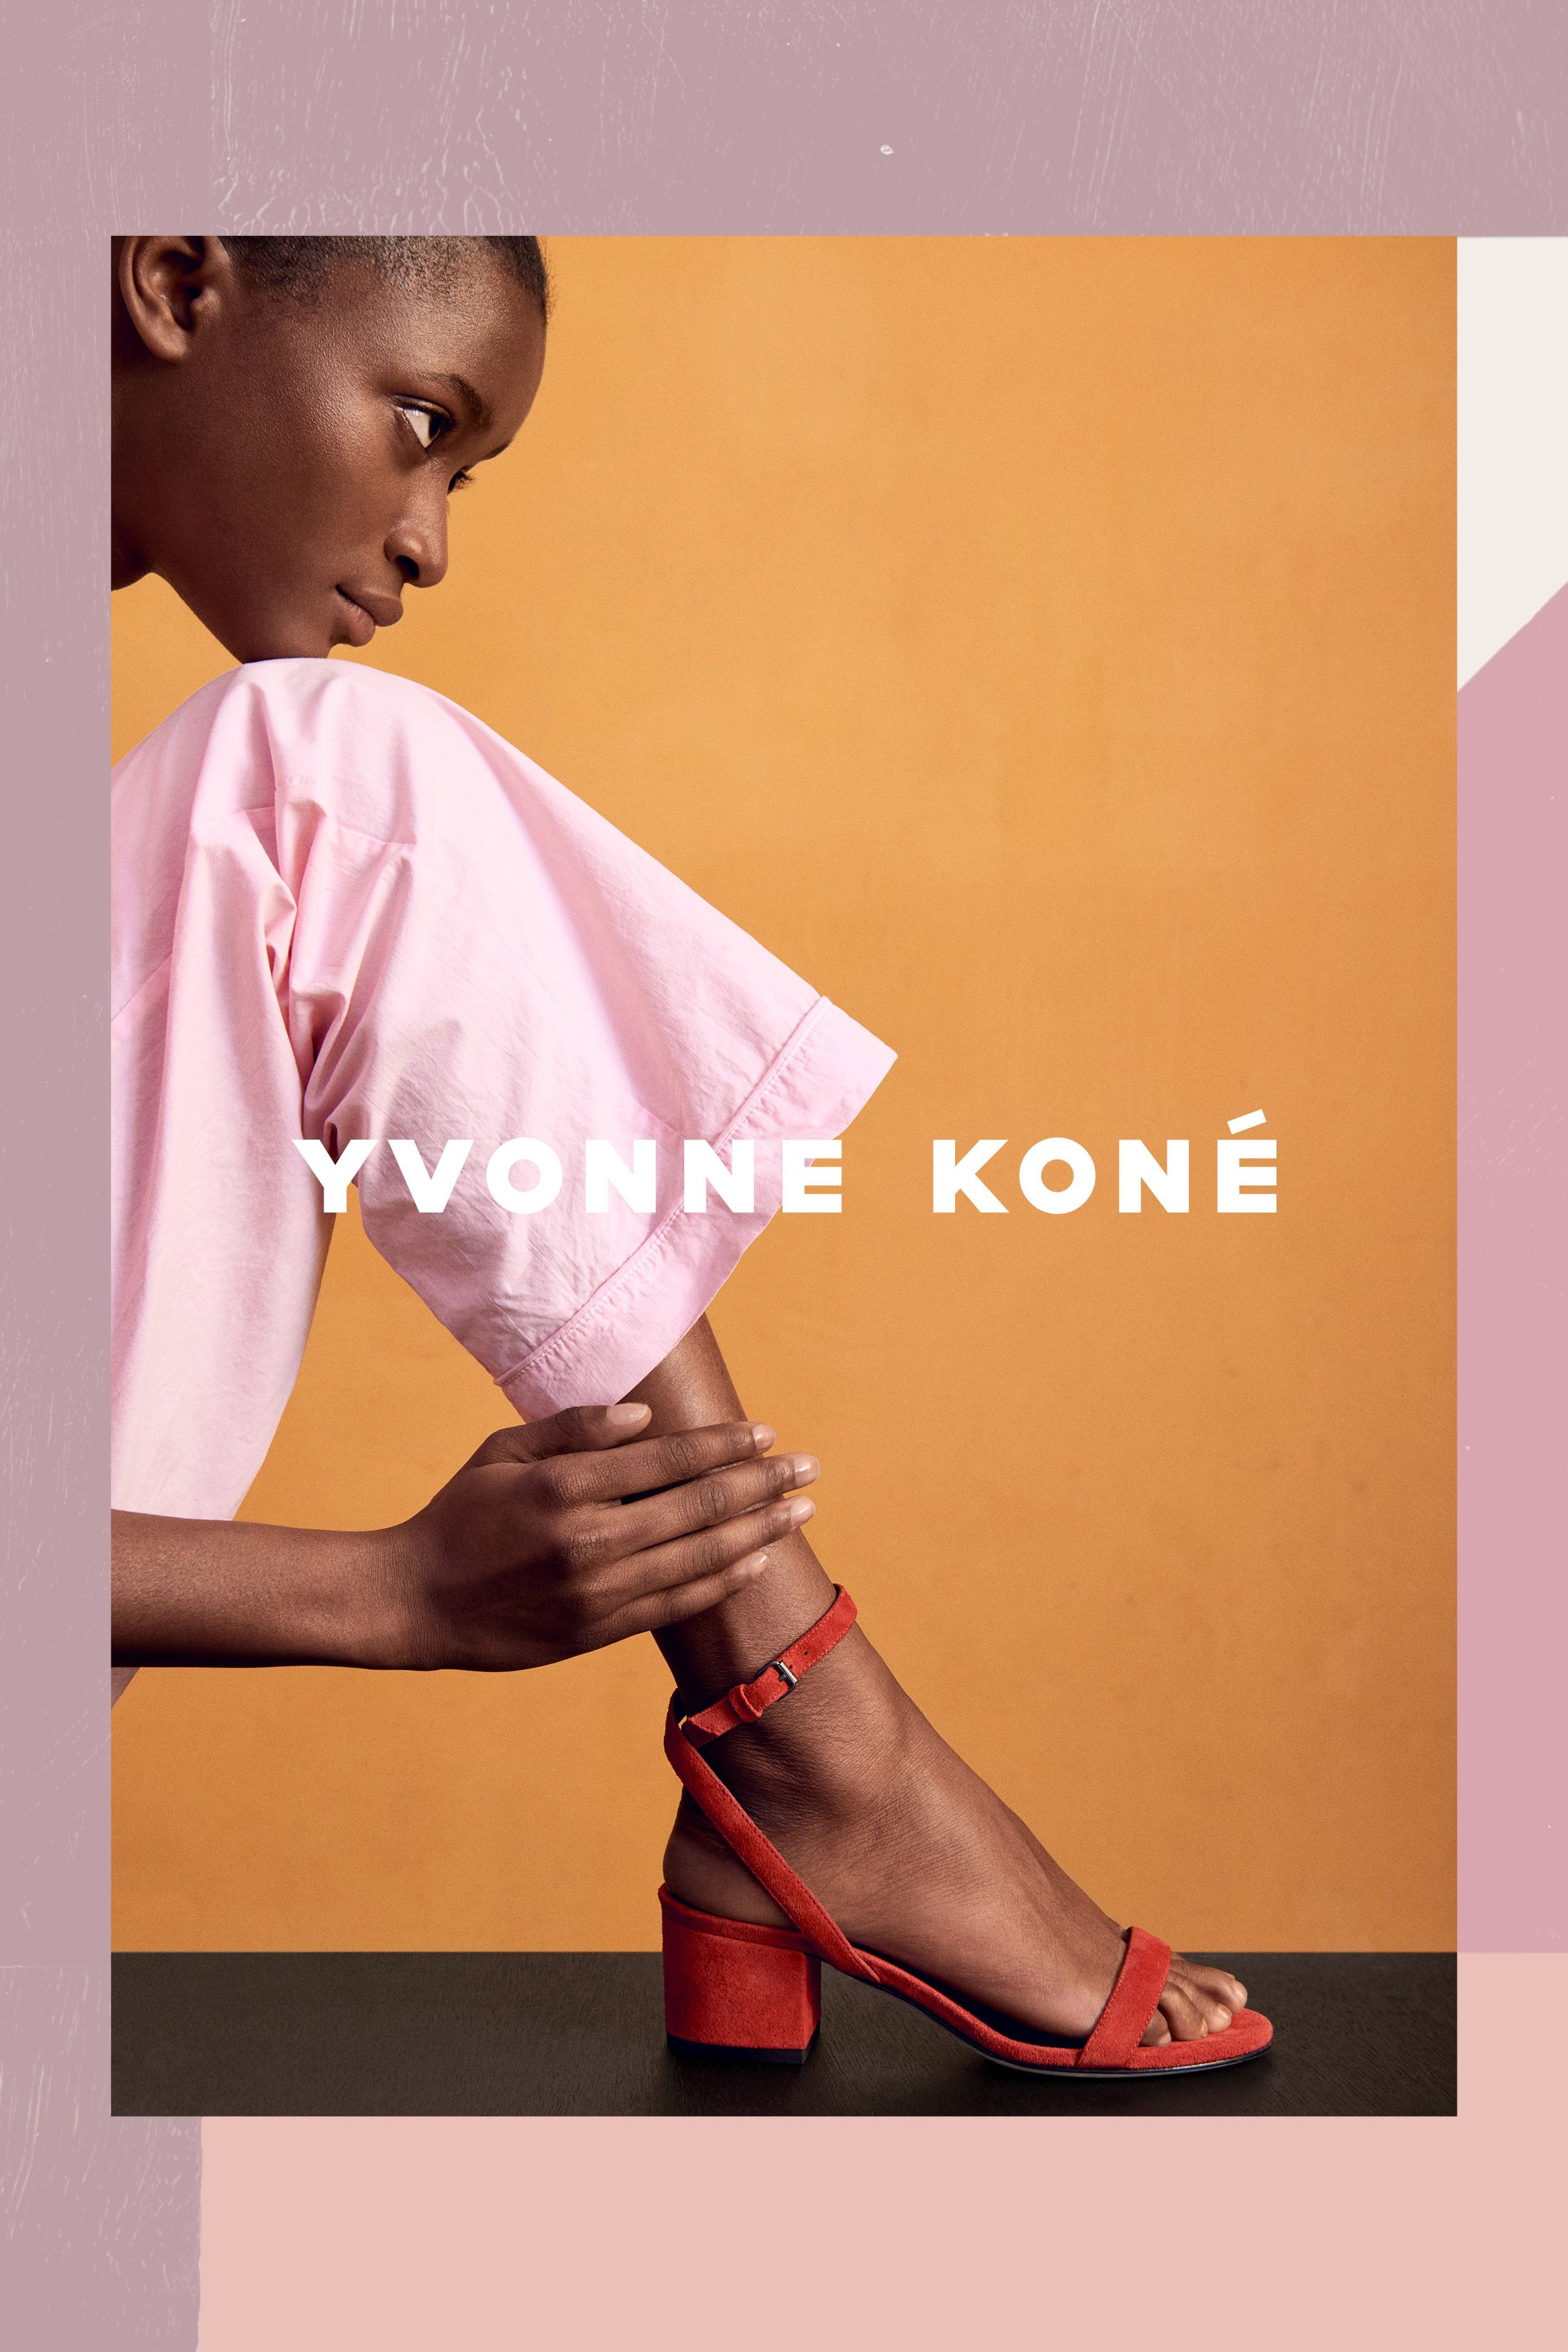 Yvonne Kone campaign photographed by Hasse Nielsen